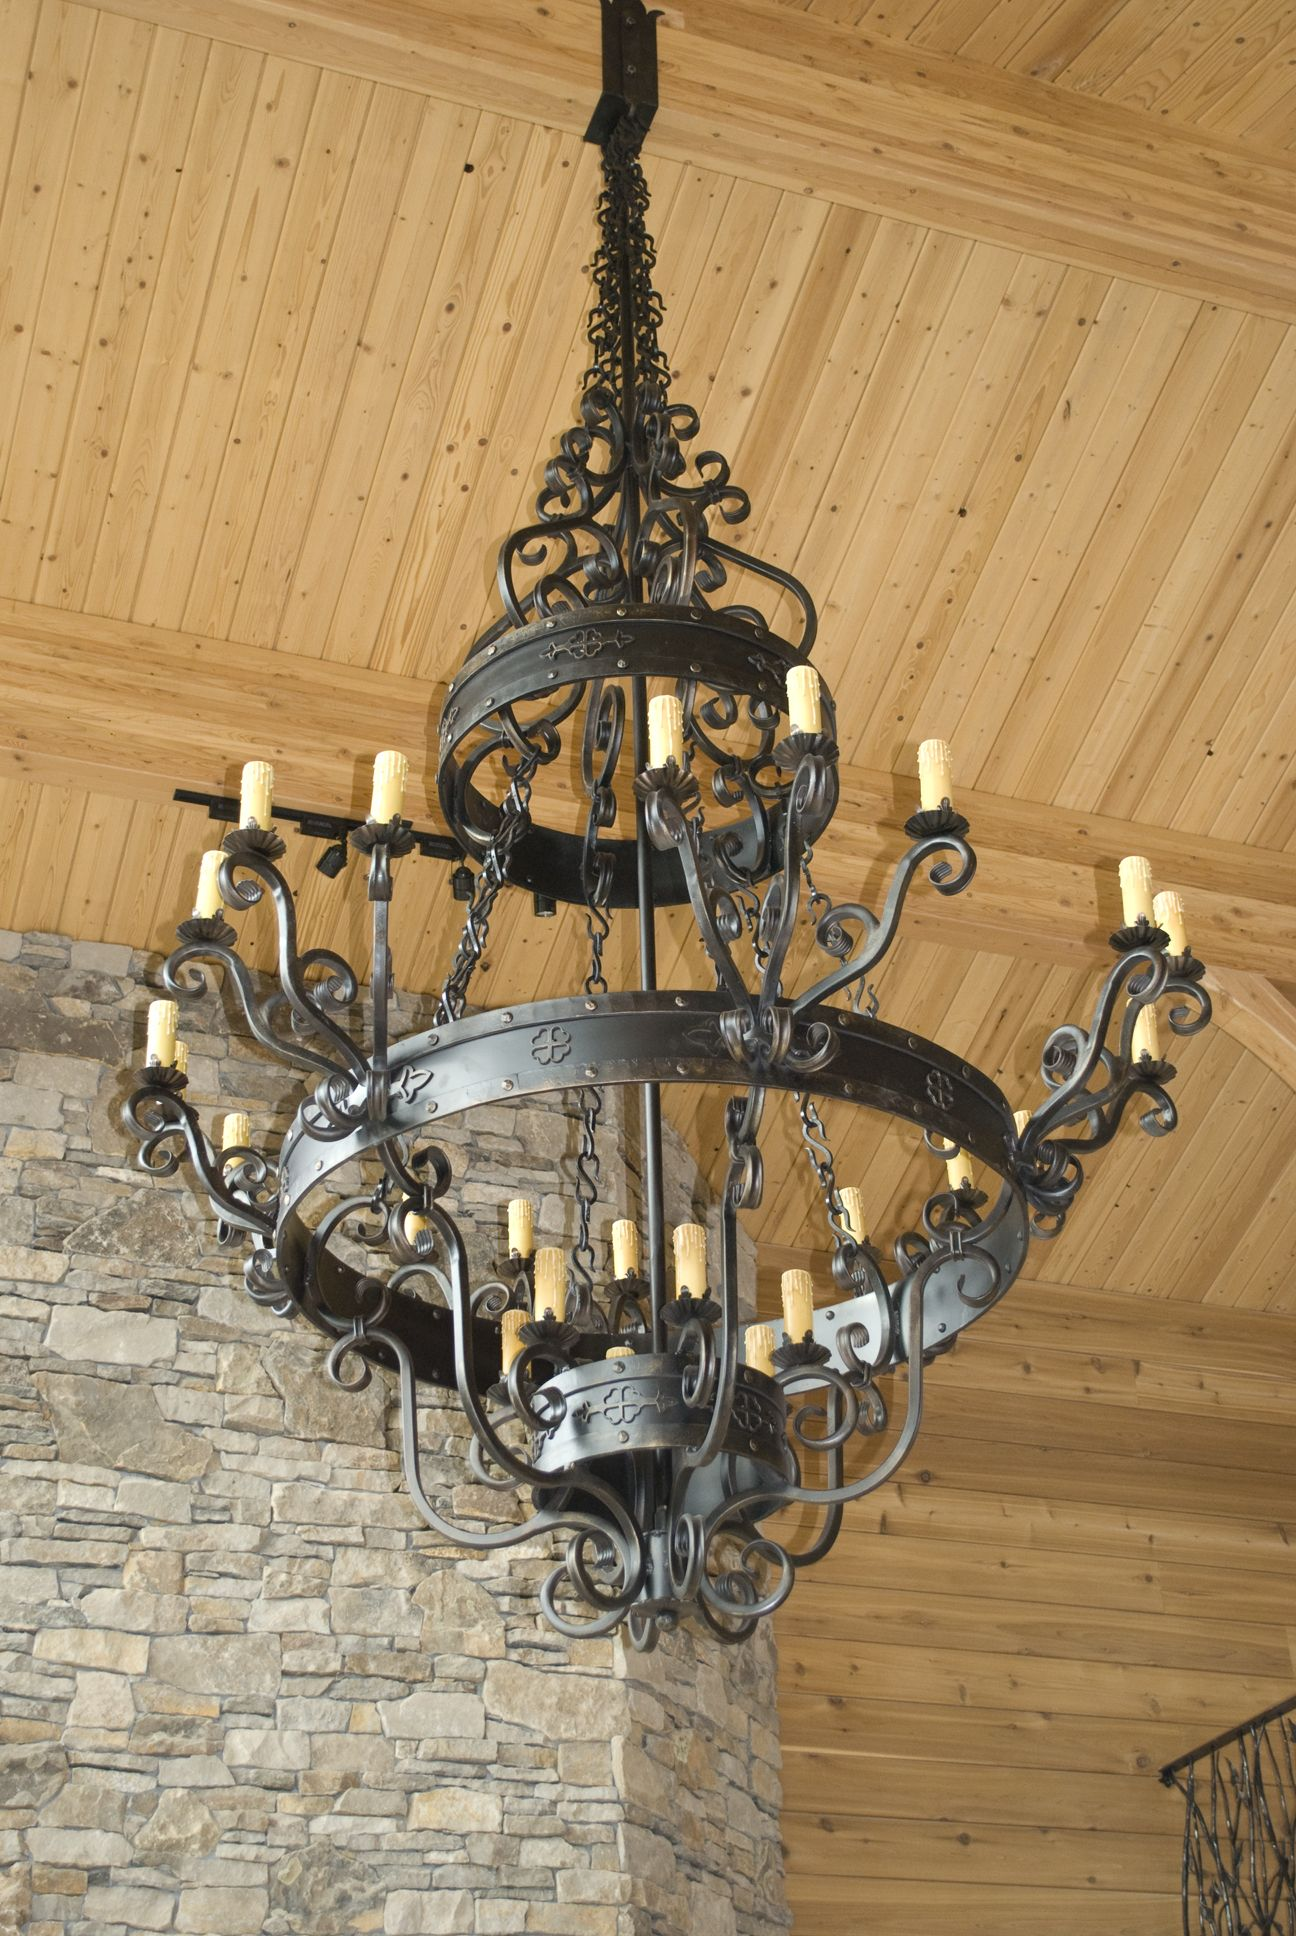 Large Rustic Chandeliers With CI Allure Of French And Italian – Chandeliers Rustic